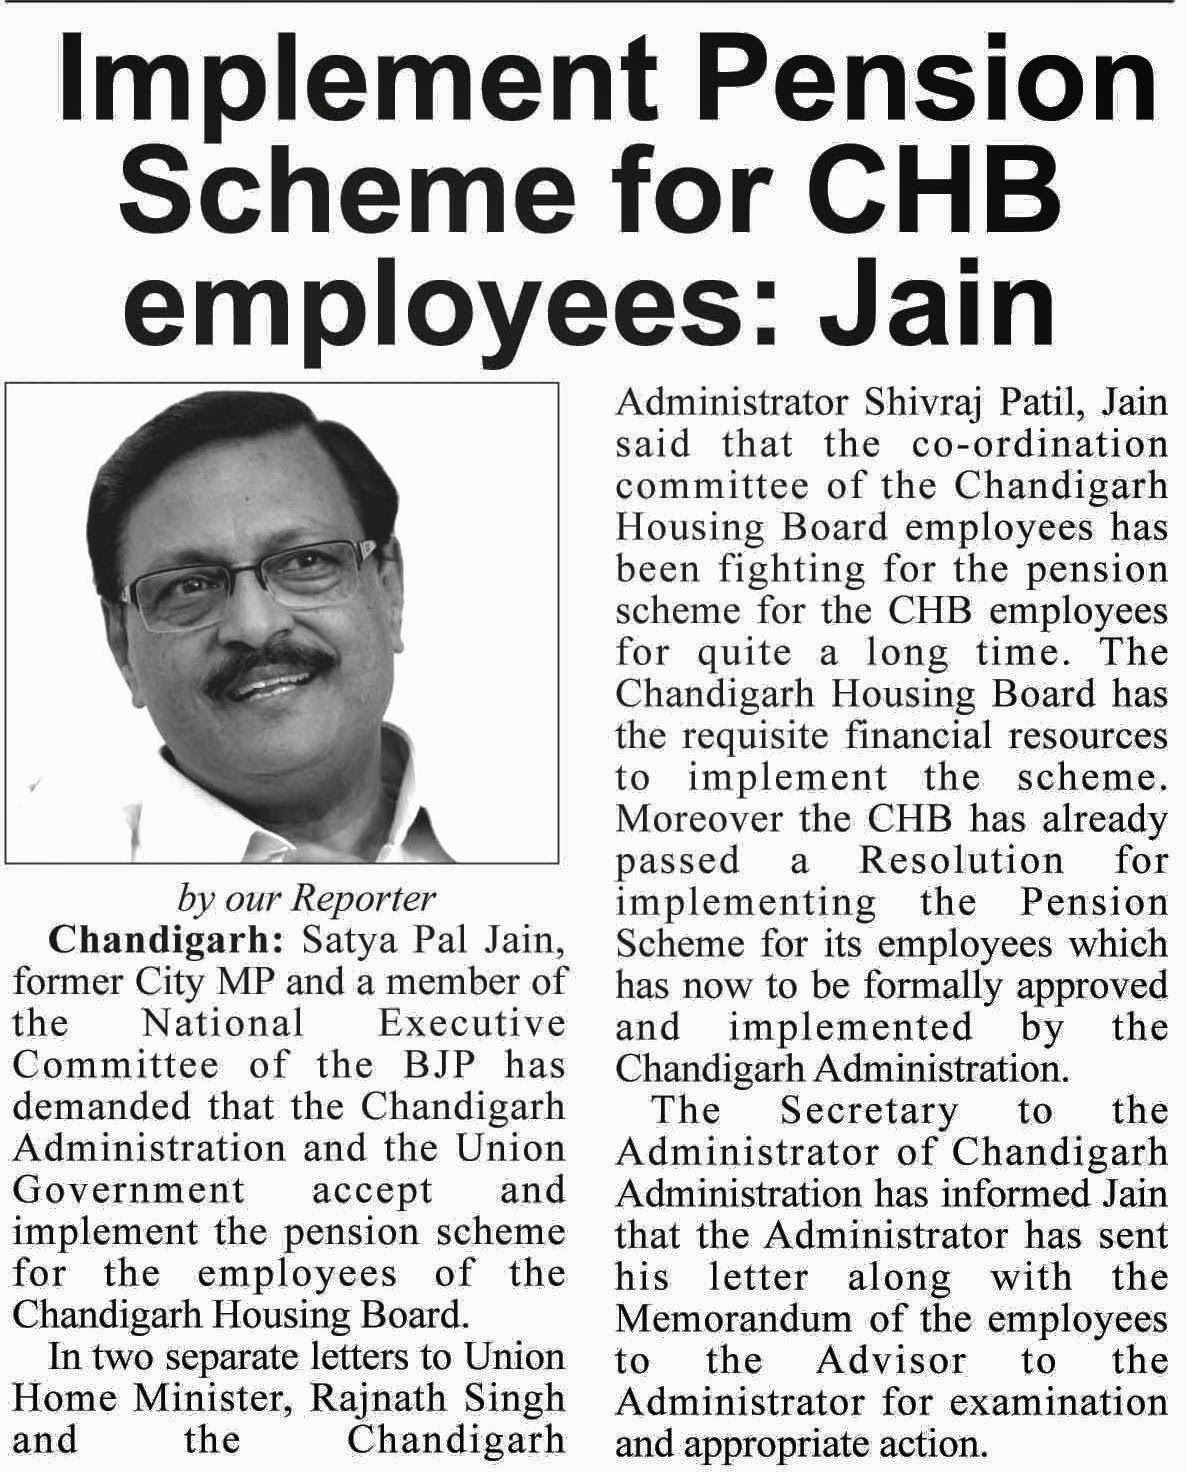 Implement Pension Scheme for CHB employees : Jain